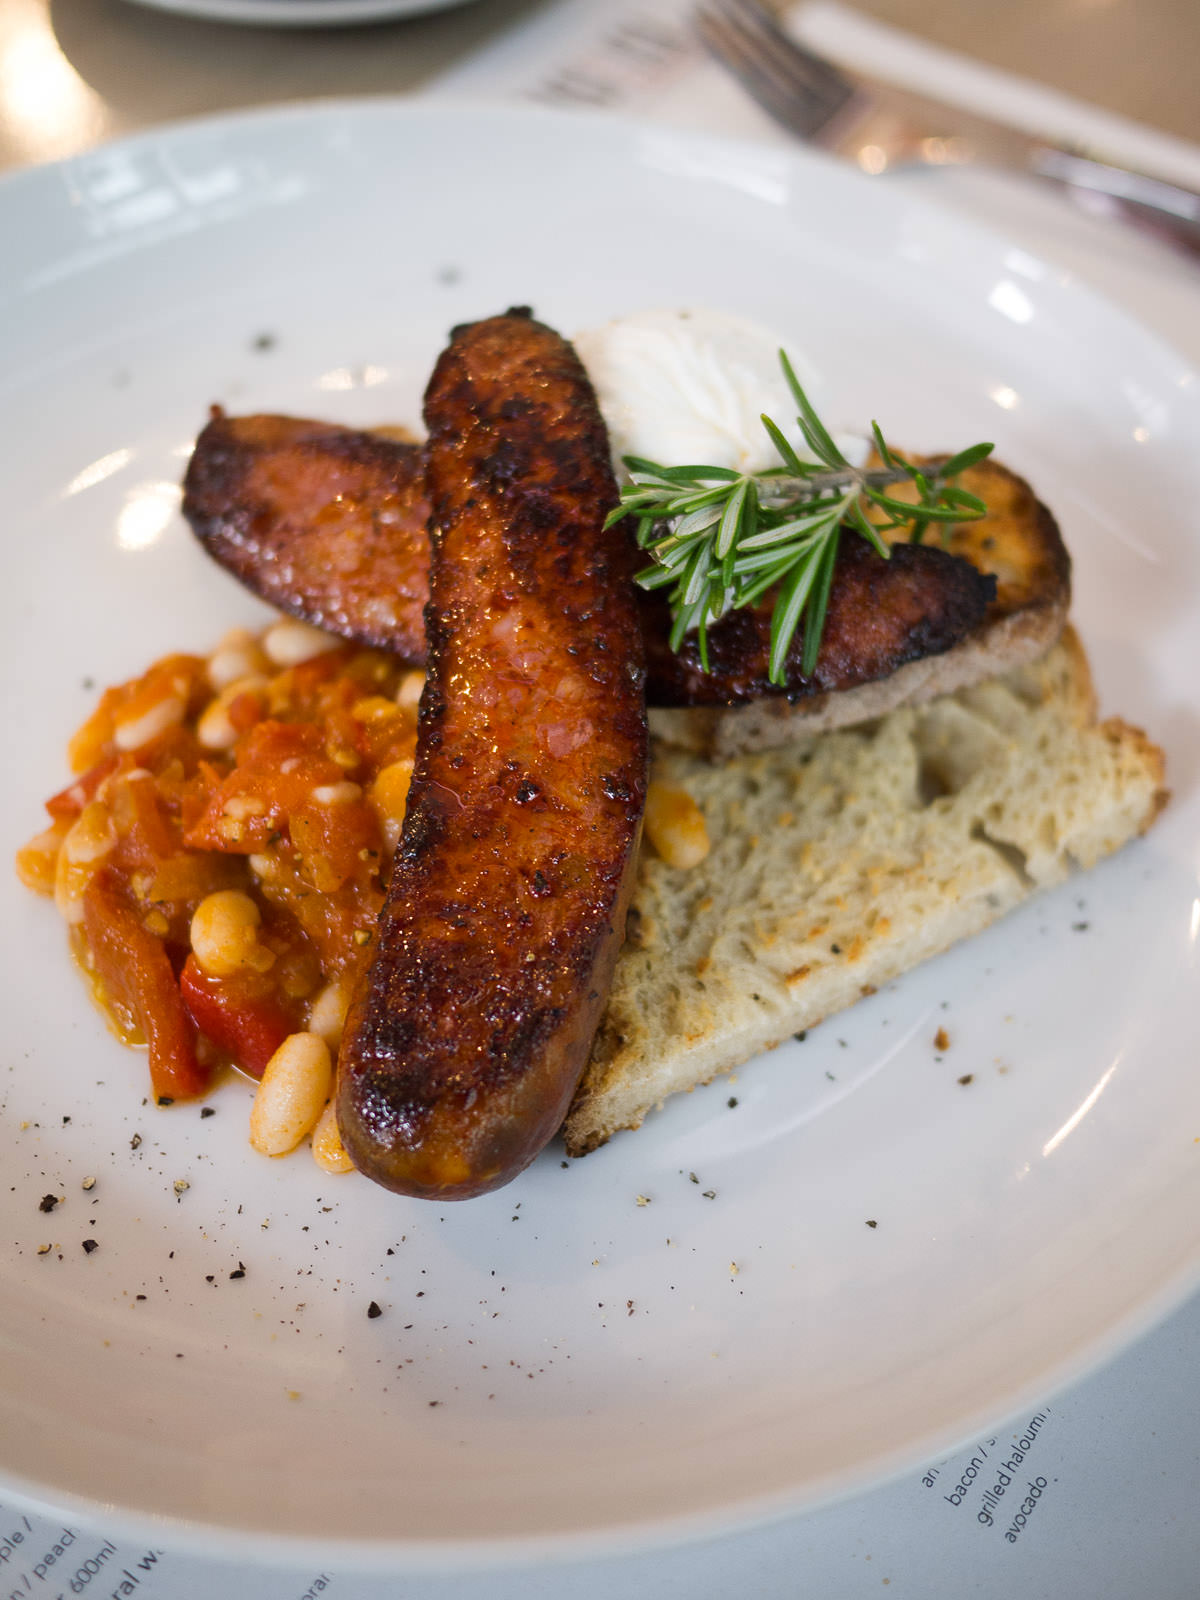 Grilled chorizo with cannellini beans, poached egg and sourdough (AU$17.50)